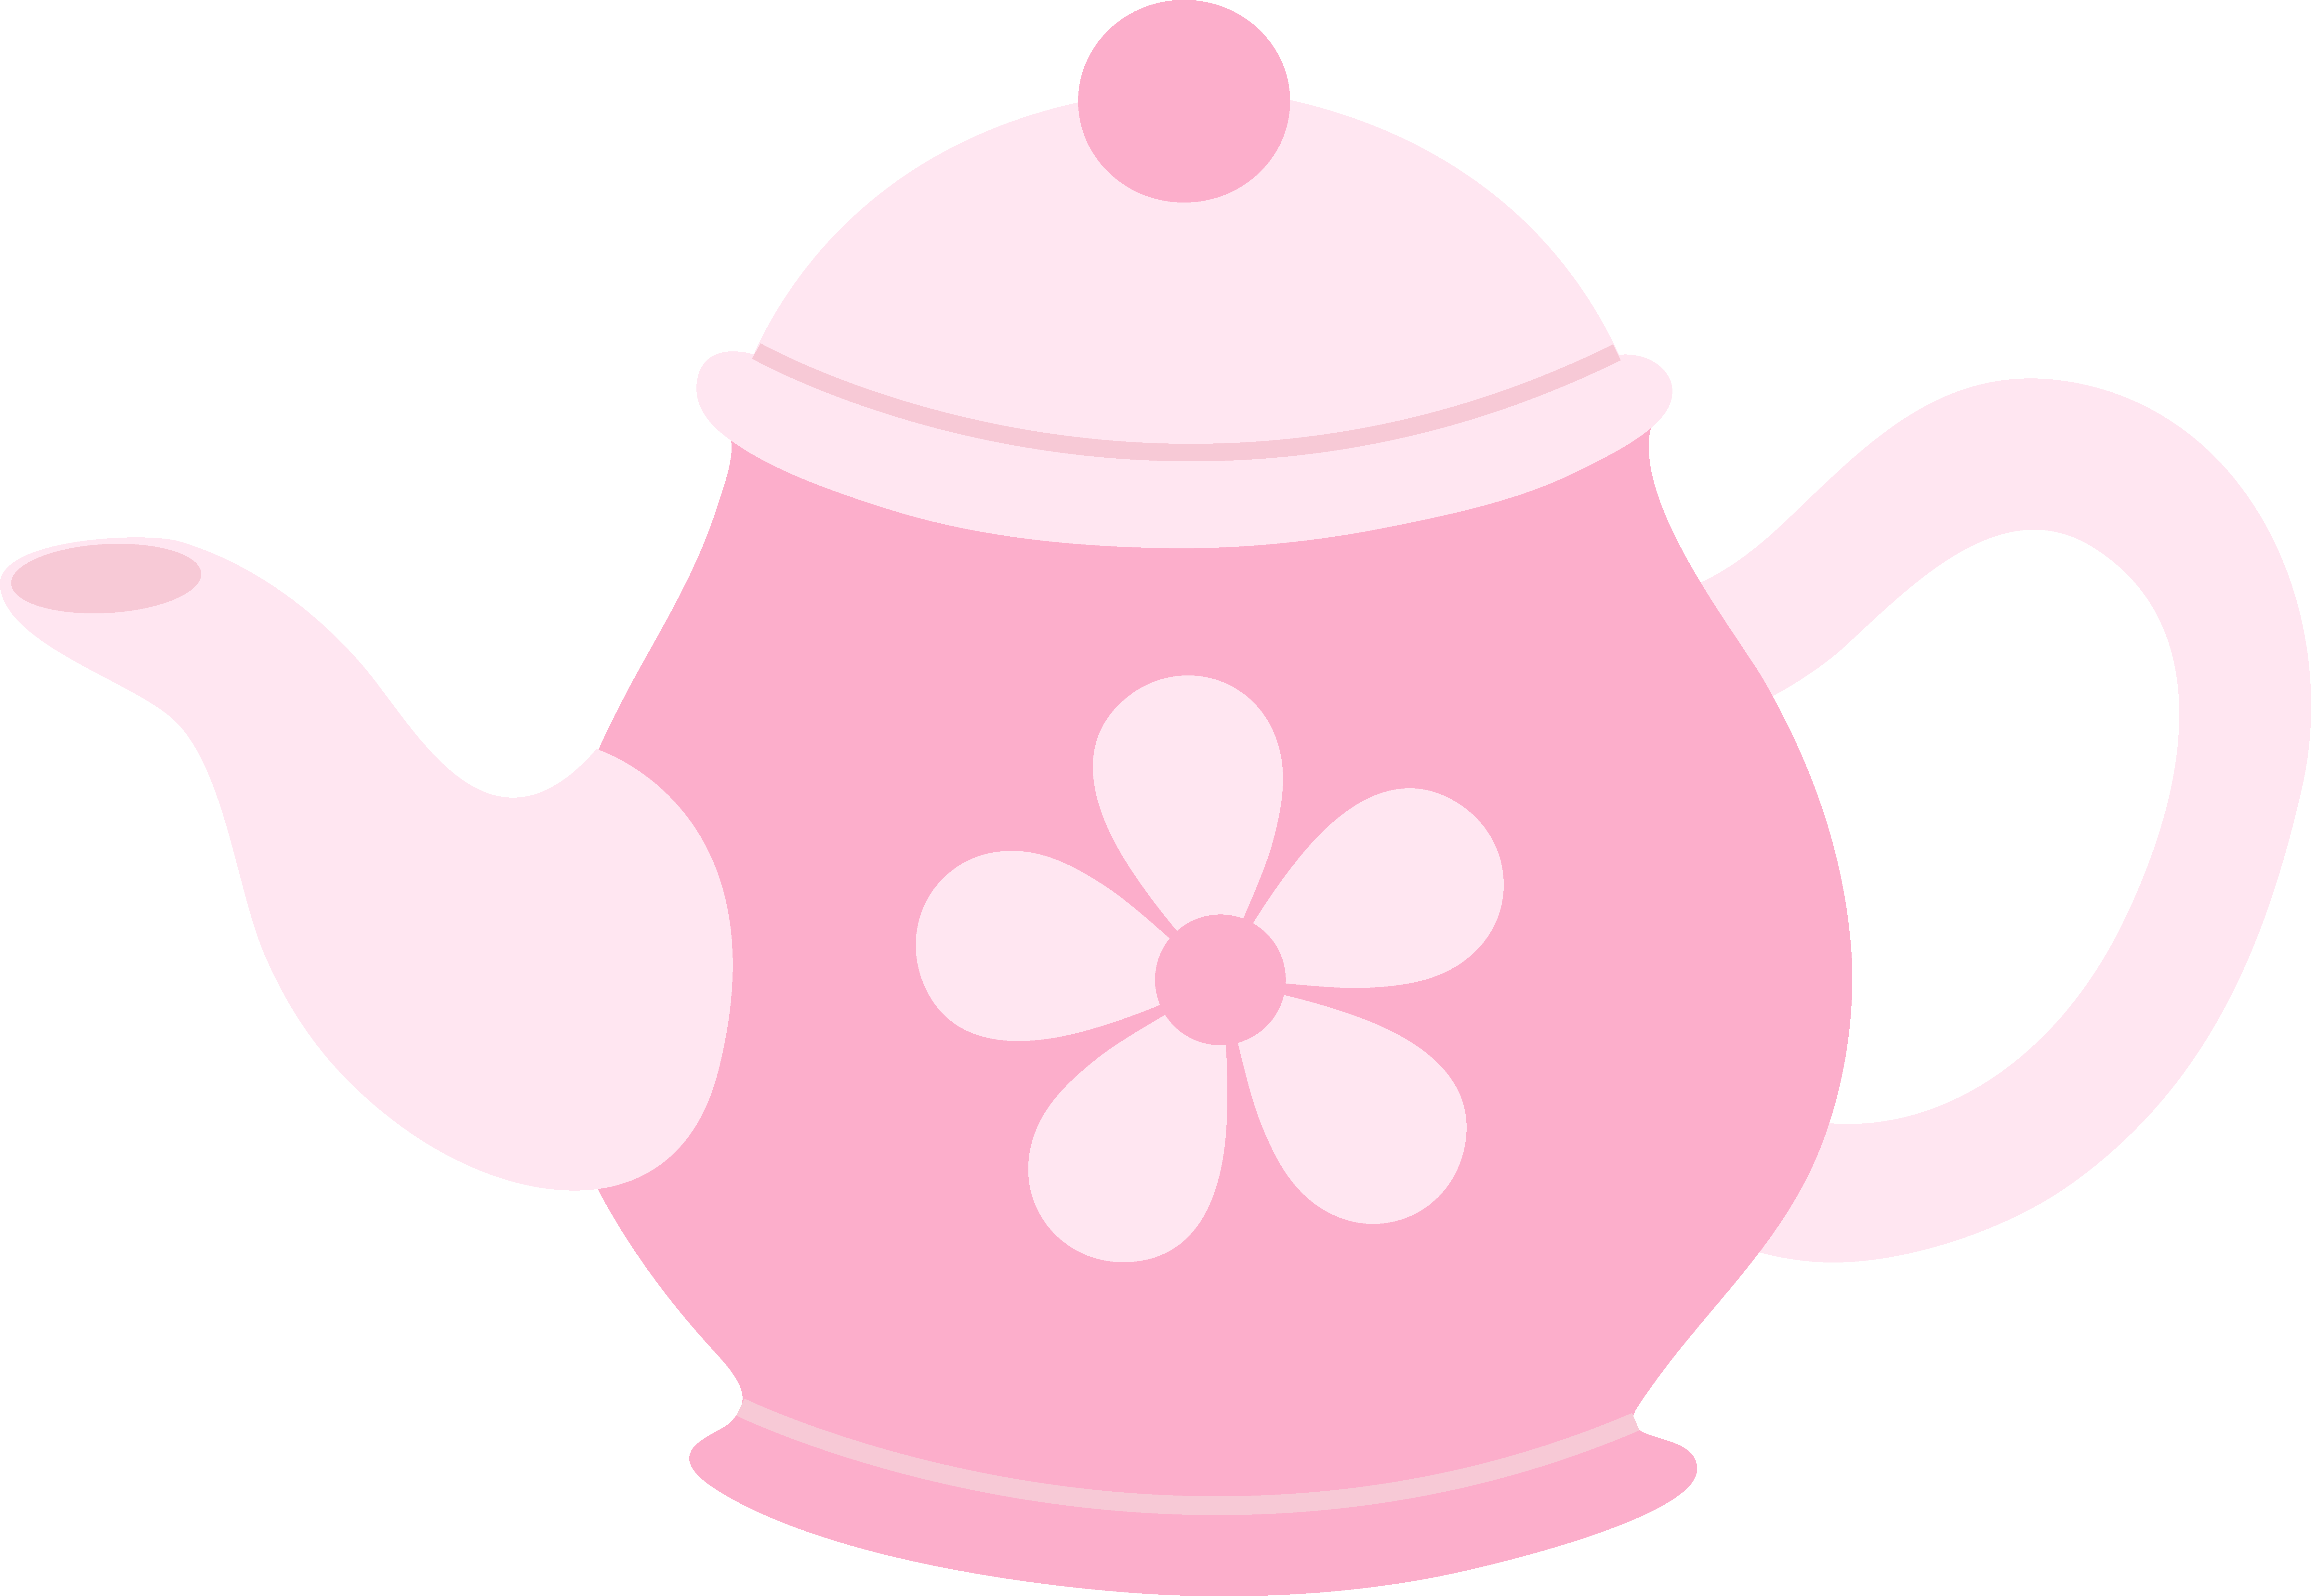 Kettle drawing cartoon. Pink teapot with flower